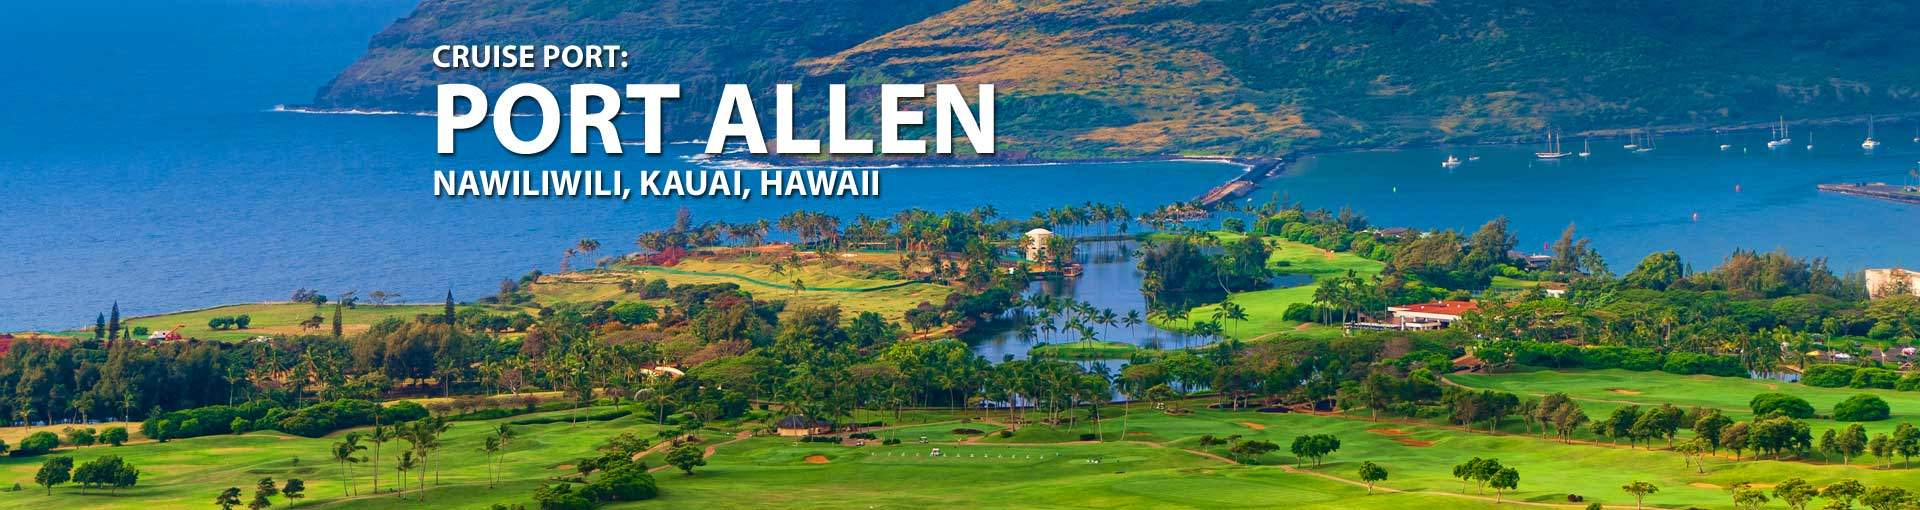 Cruises to Port Allen, Nawiliwili, Kauai, Hawaii